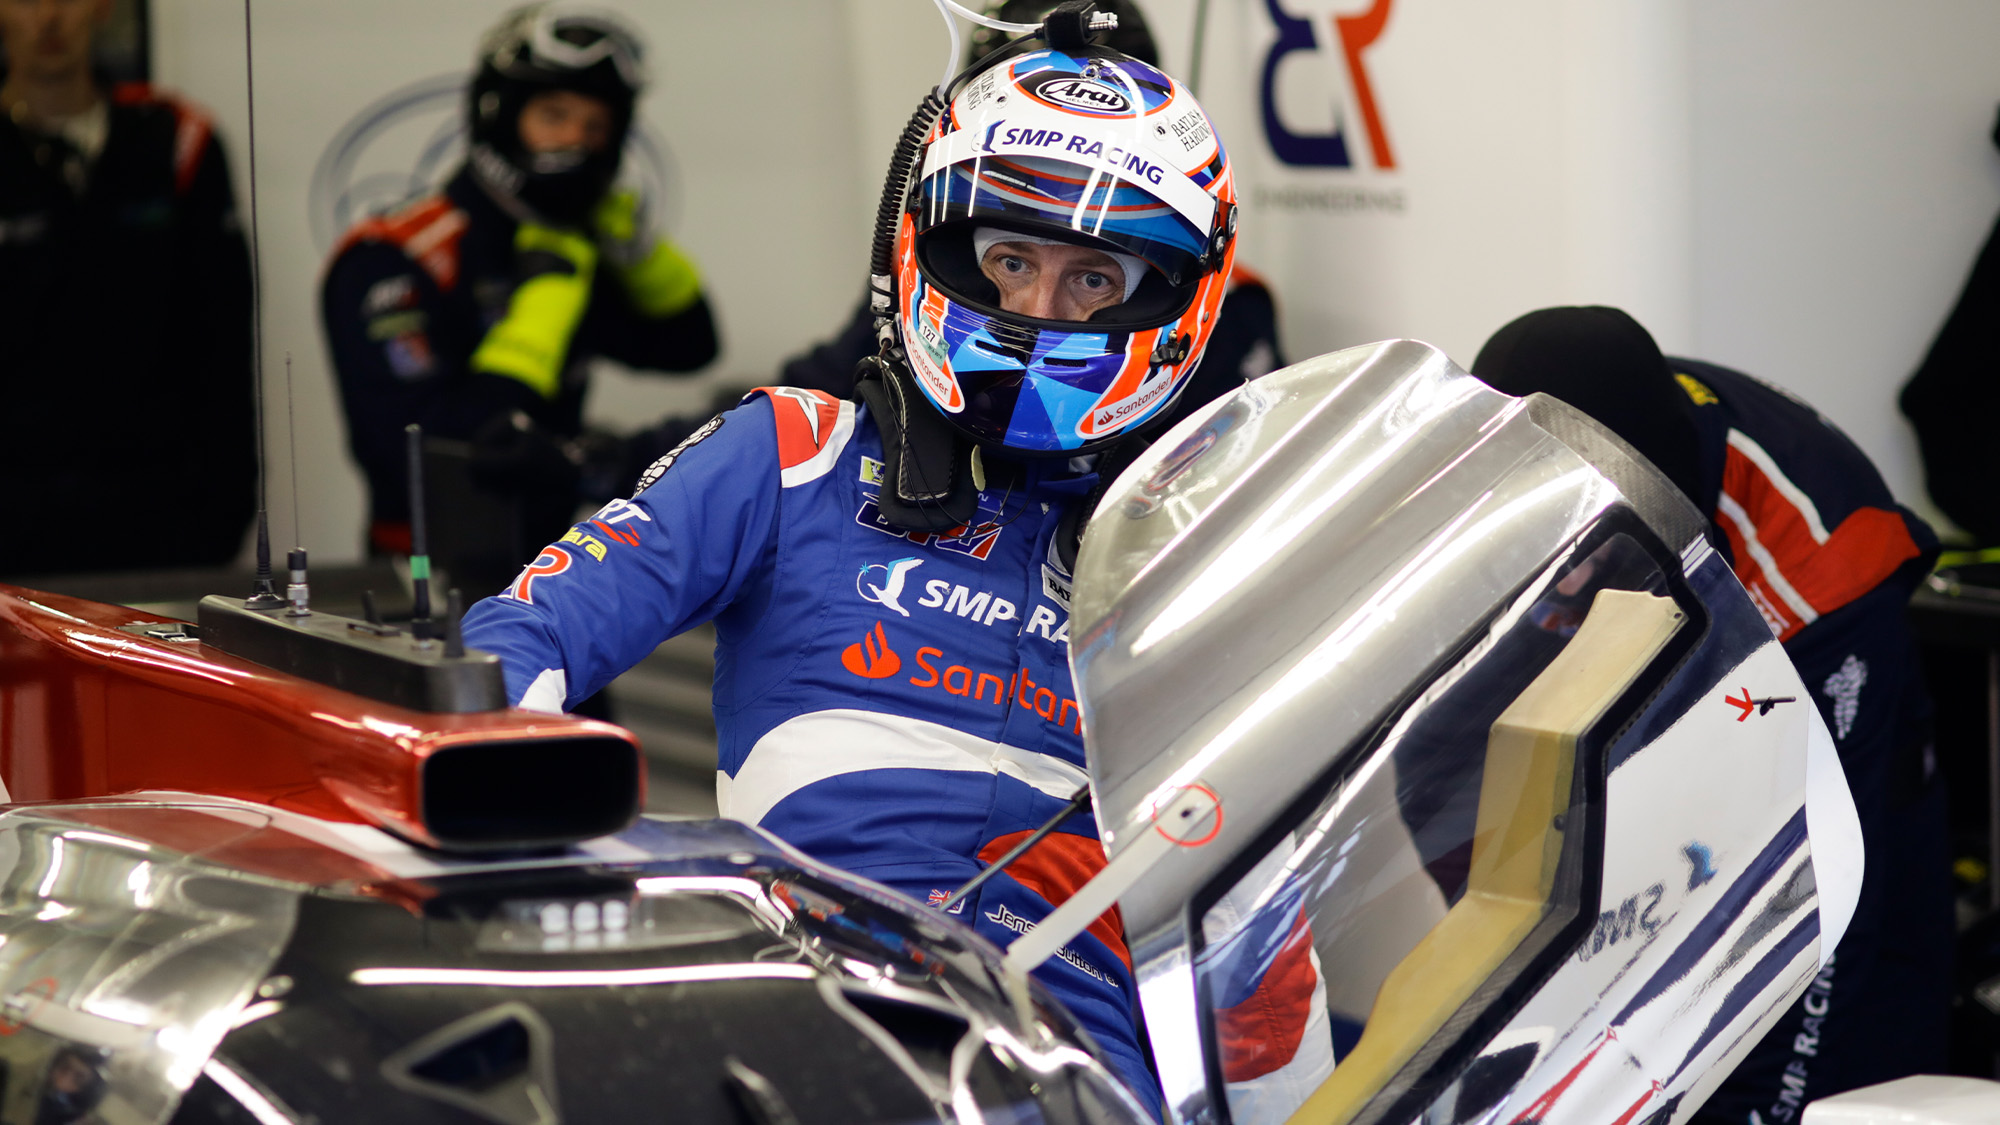 Jenson Button gets into his SMP Racing car at the 2018 Le Mans 24 Hours